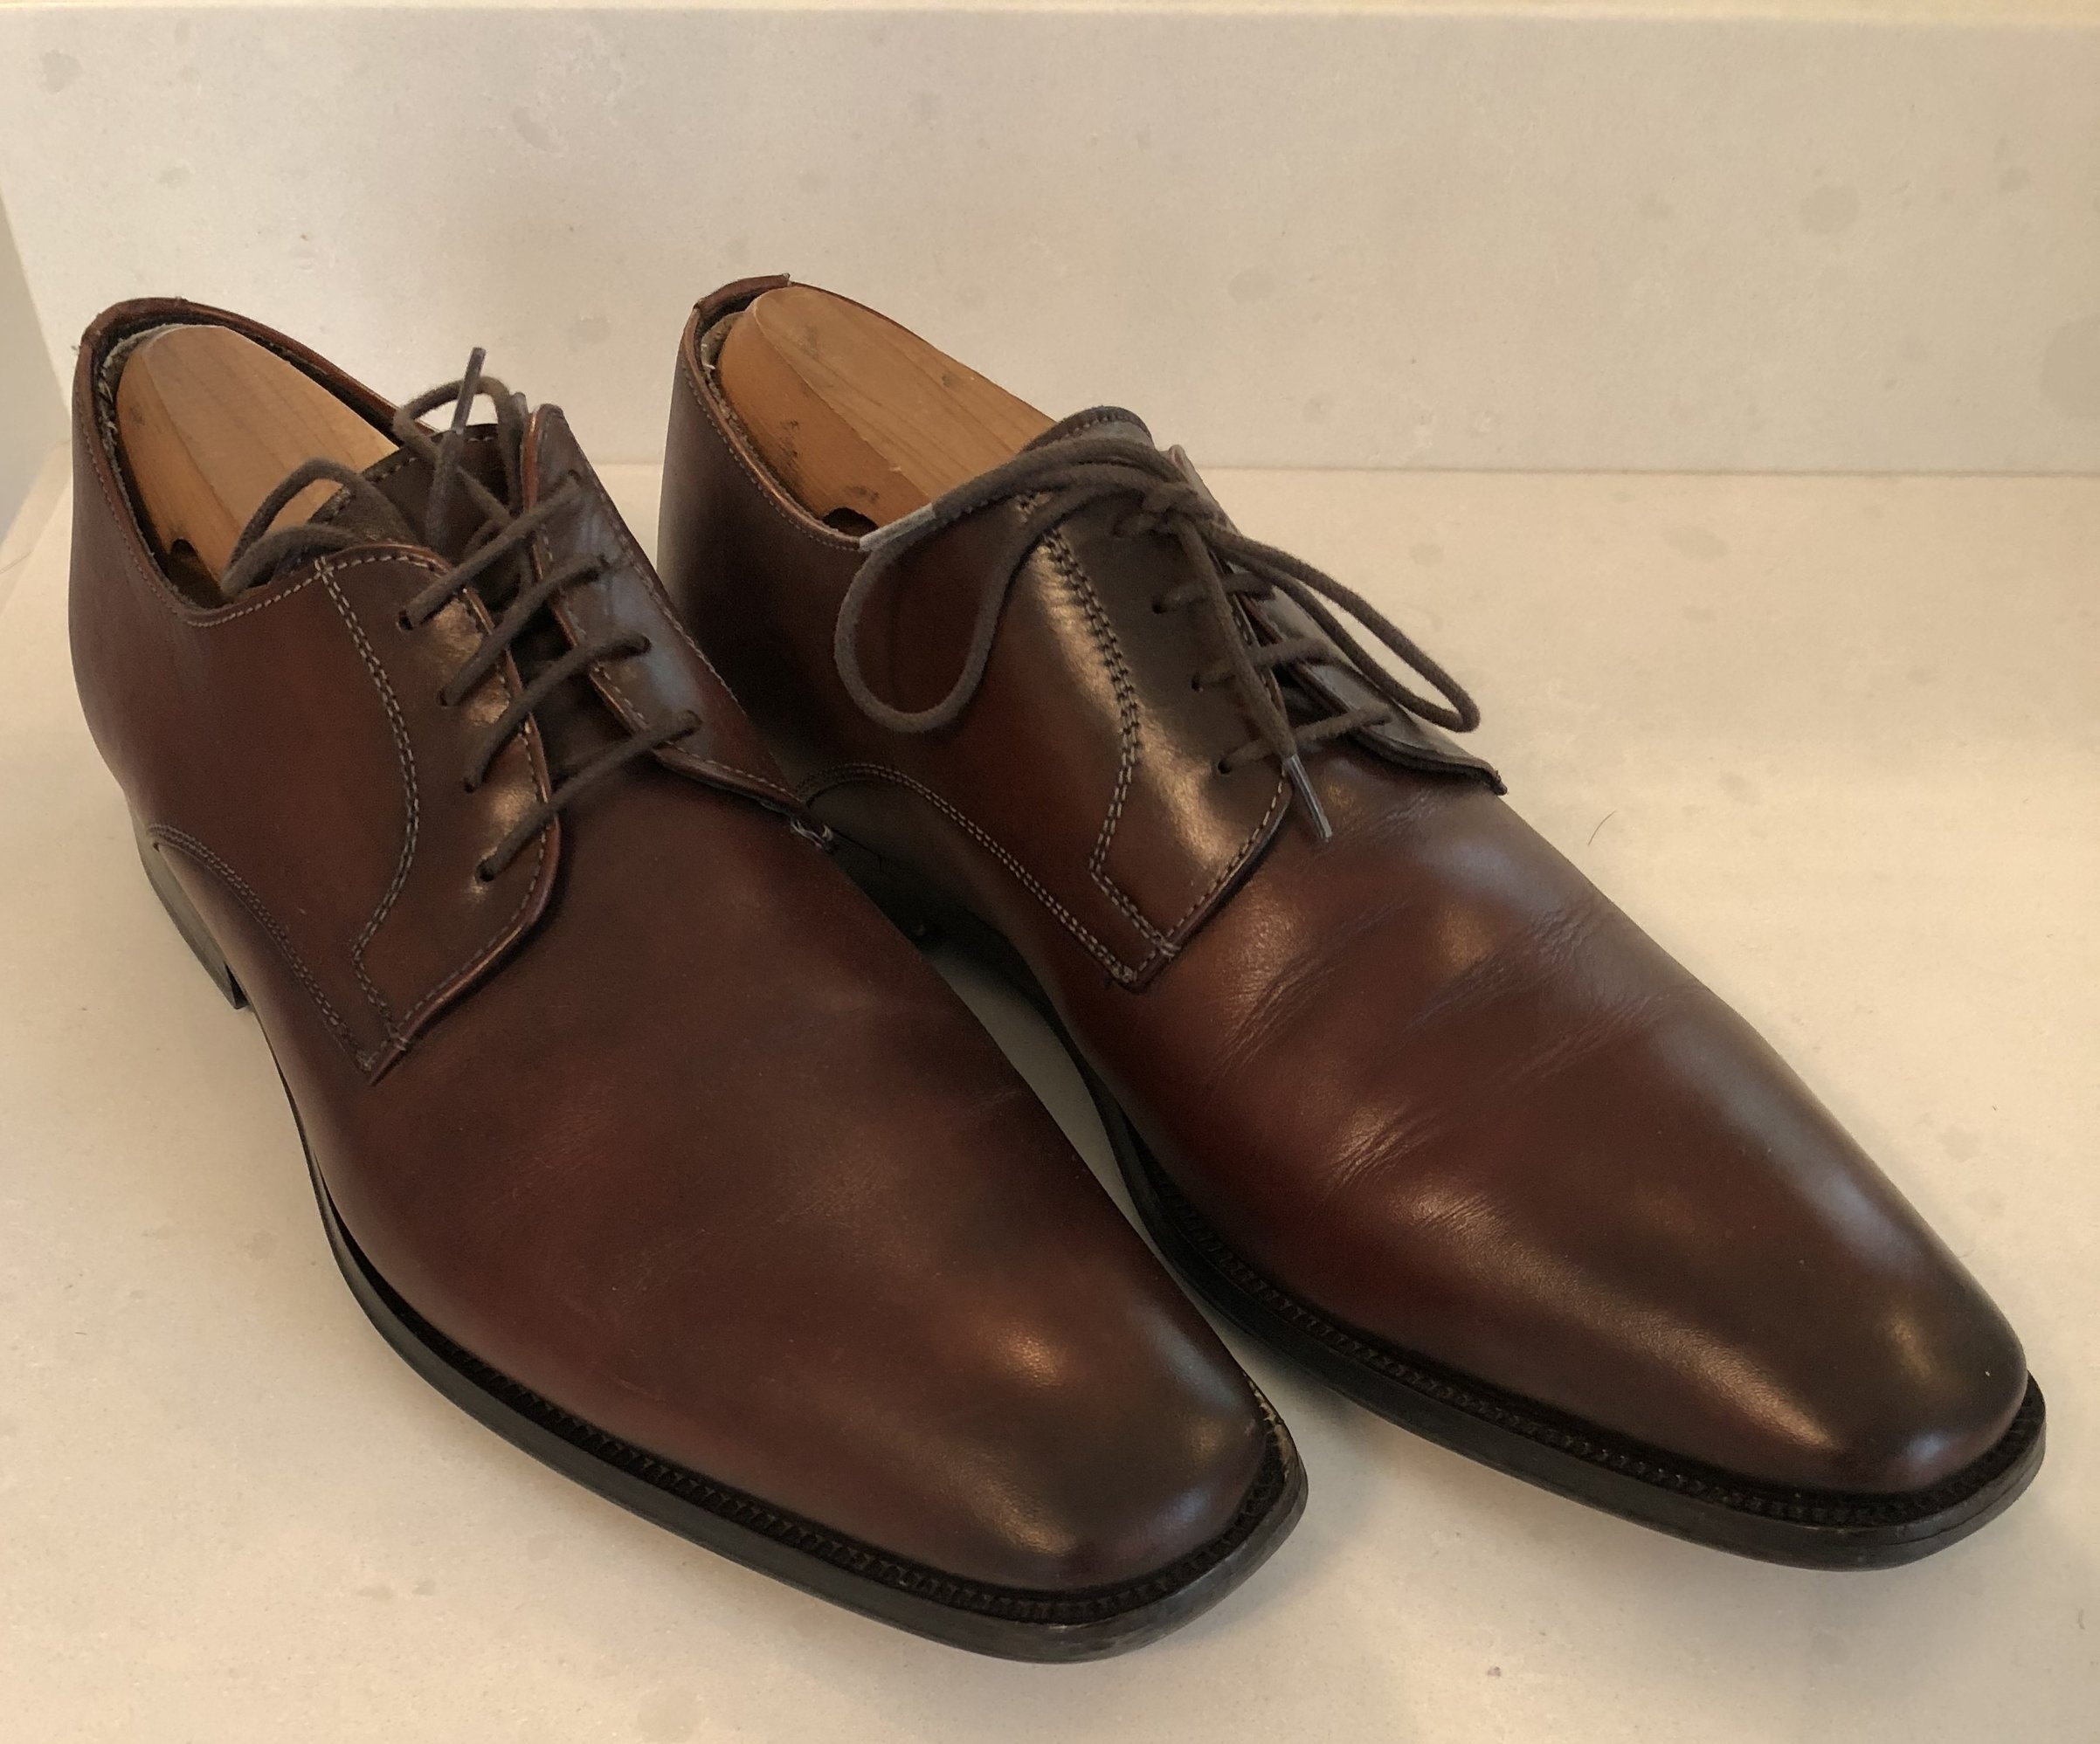 Like these cordovan shoes by To Boot New York.